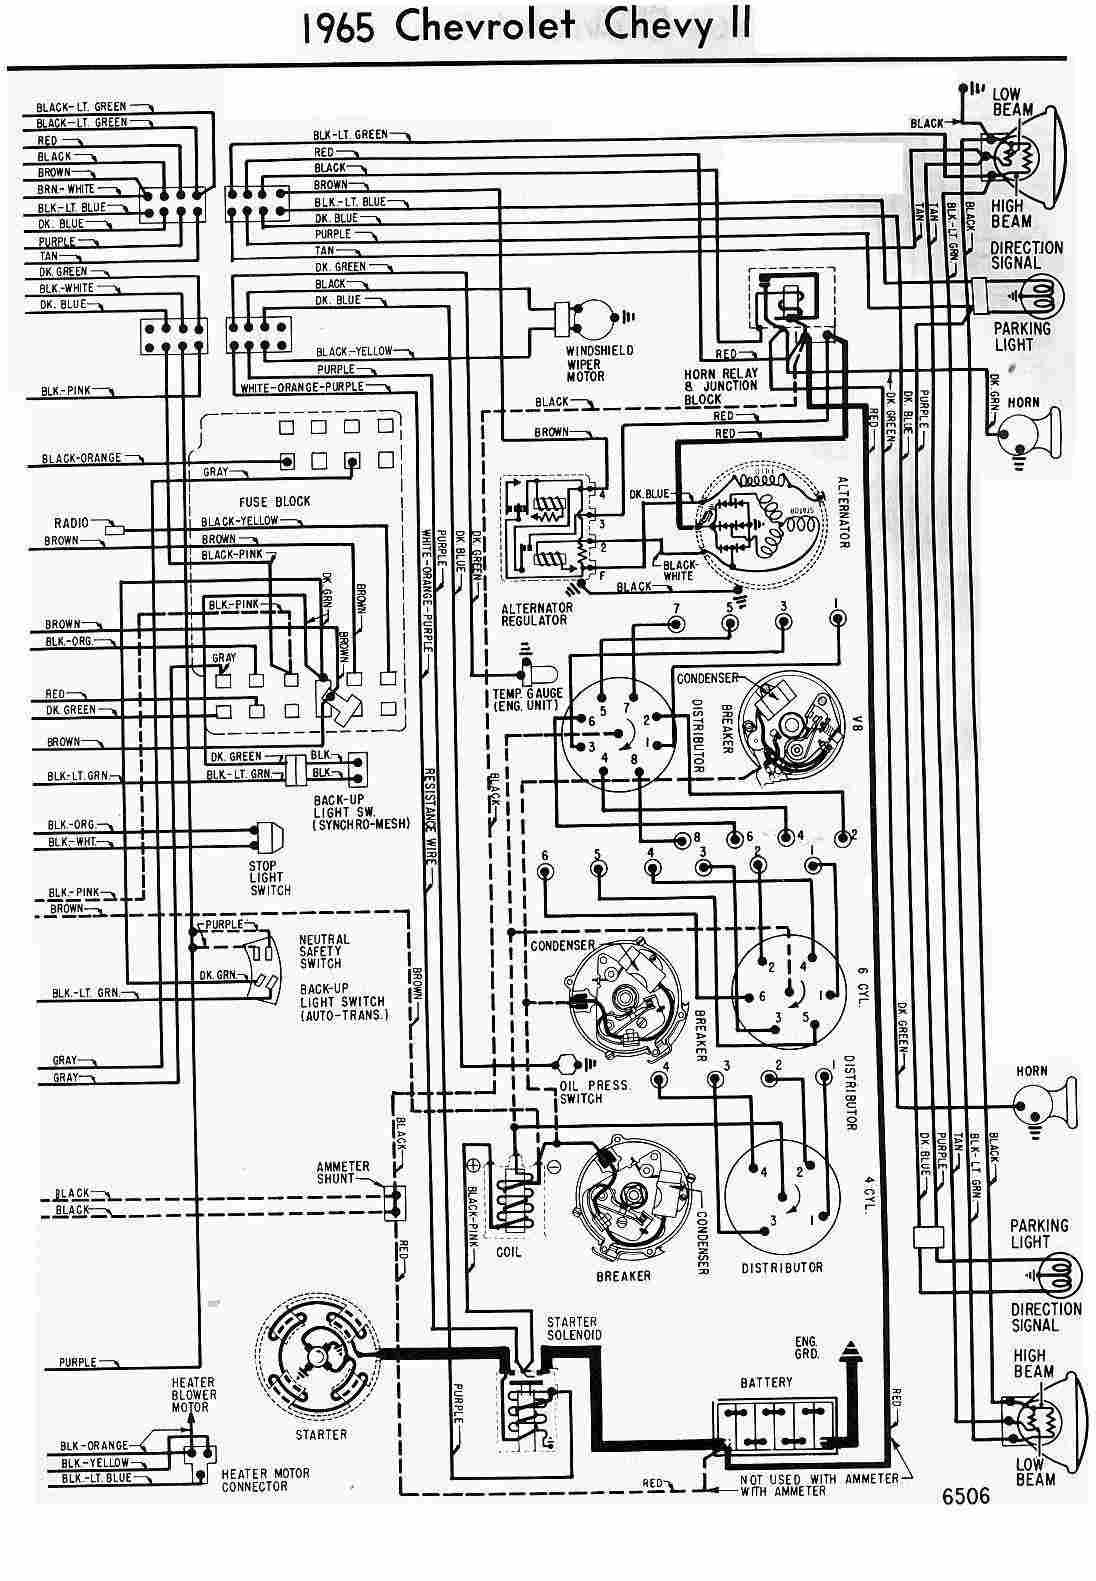 1965 chevy impala ignition switch wiring diagram arbortech us rh arbortech us Impala V6 Wiring-Diagram Headlight Wiring Diagram